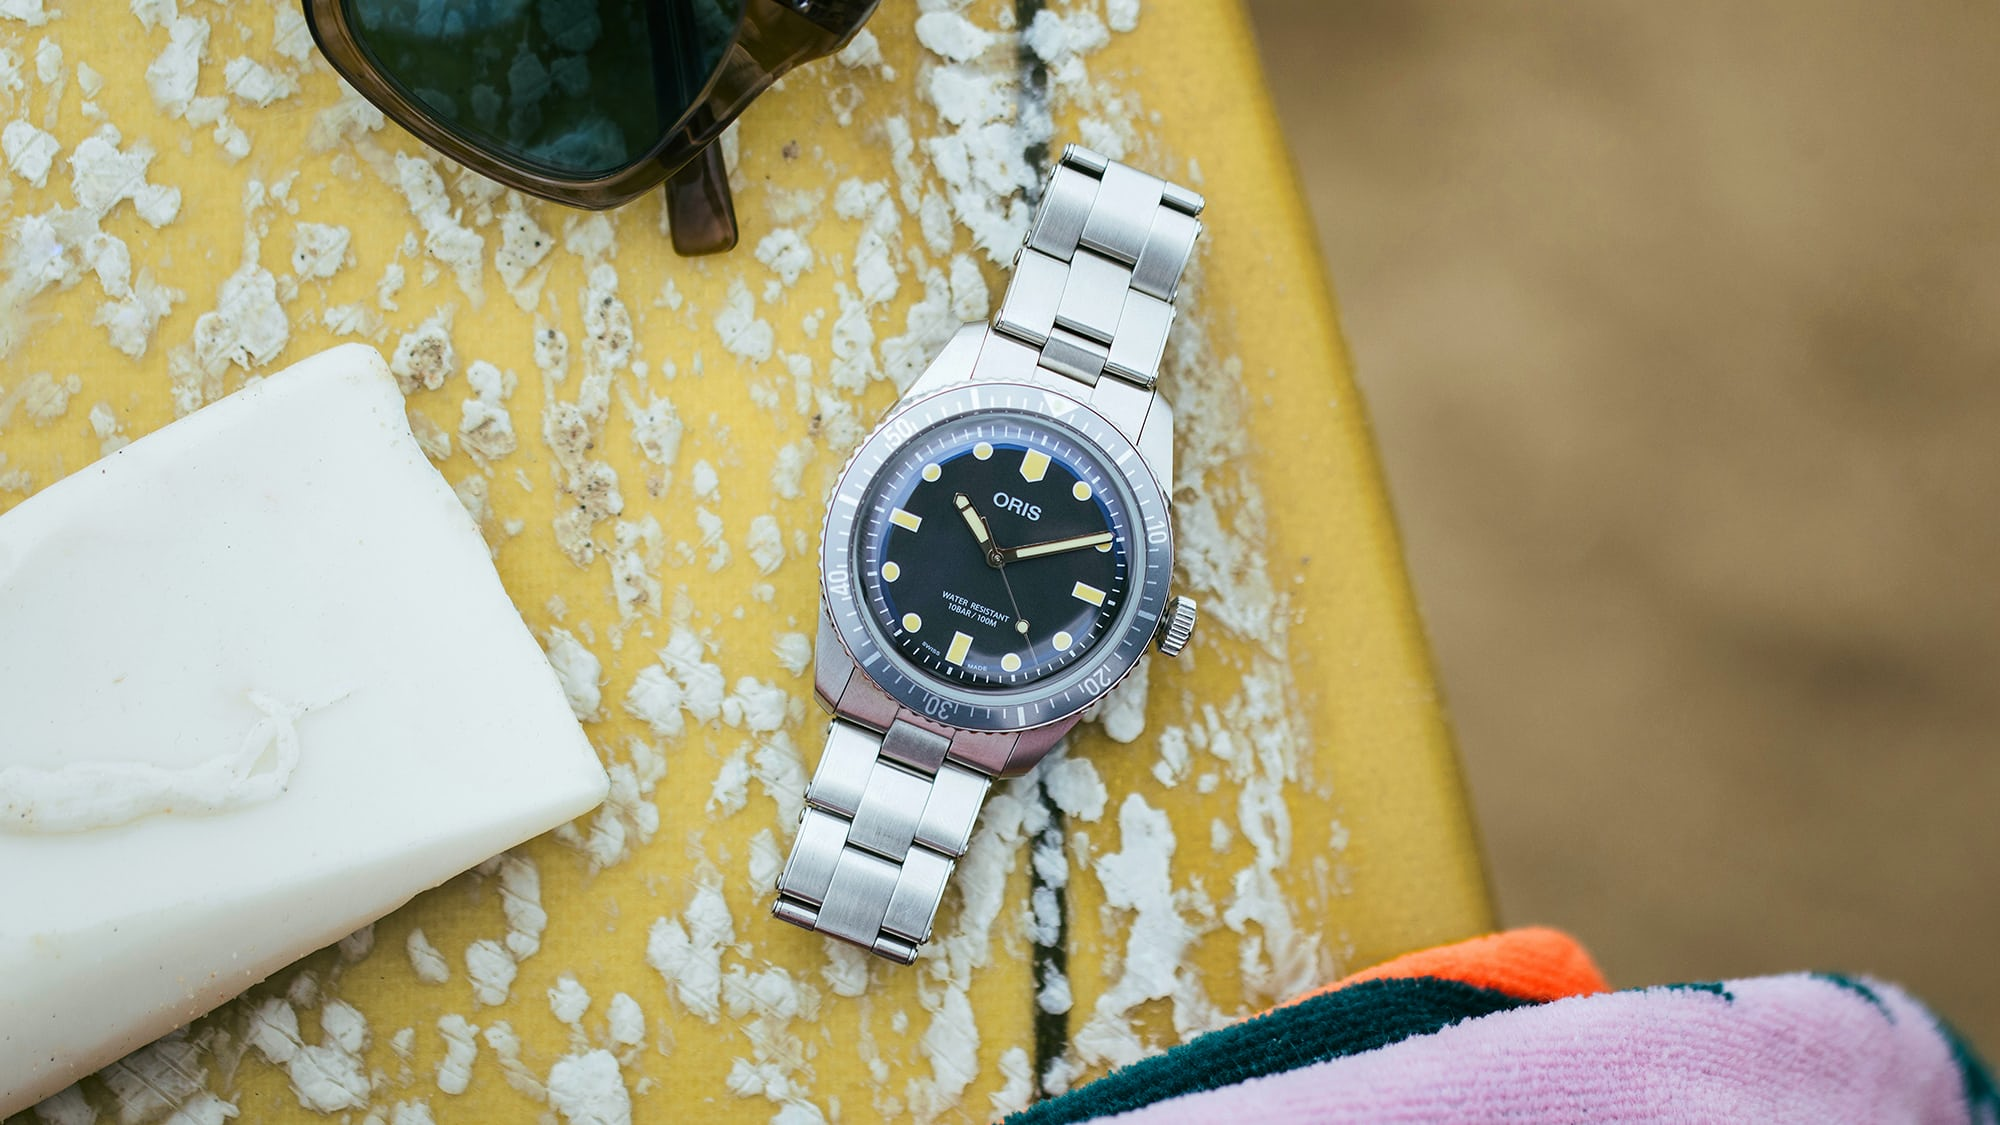 Introducing: The Oris Divers Sixty-Five Limited Edition For HODINKEE